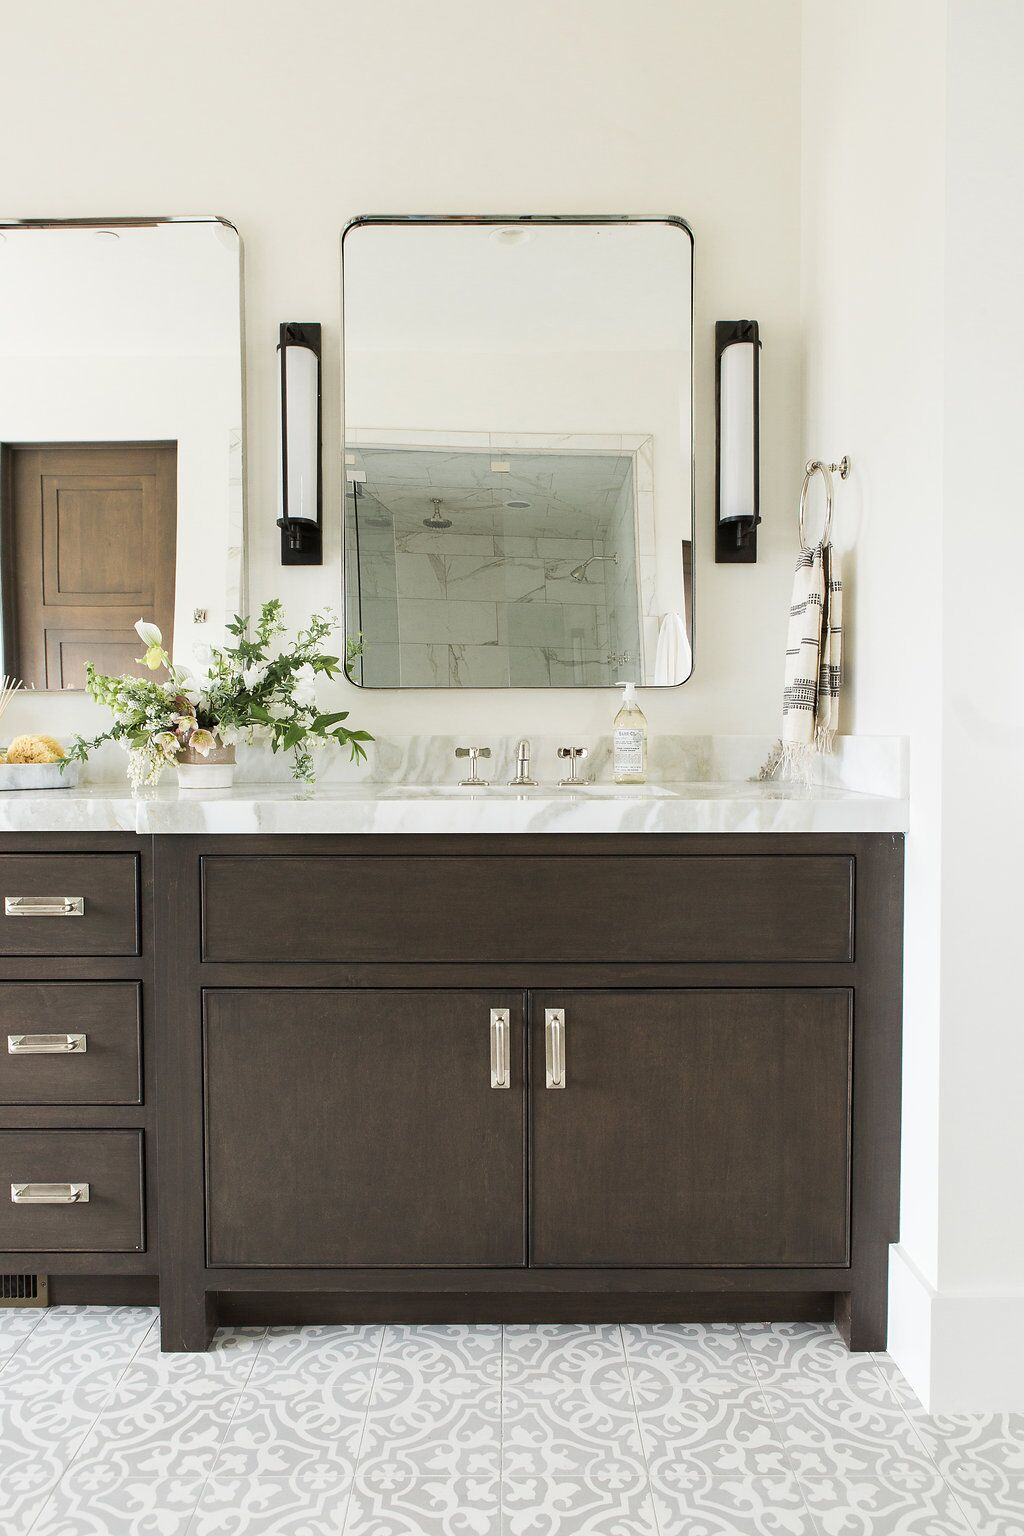 Vertical mirror hanging behind vanity sink